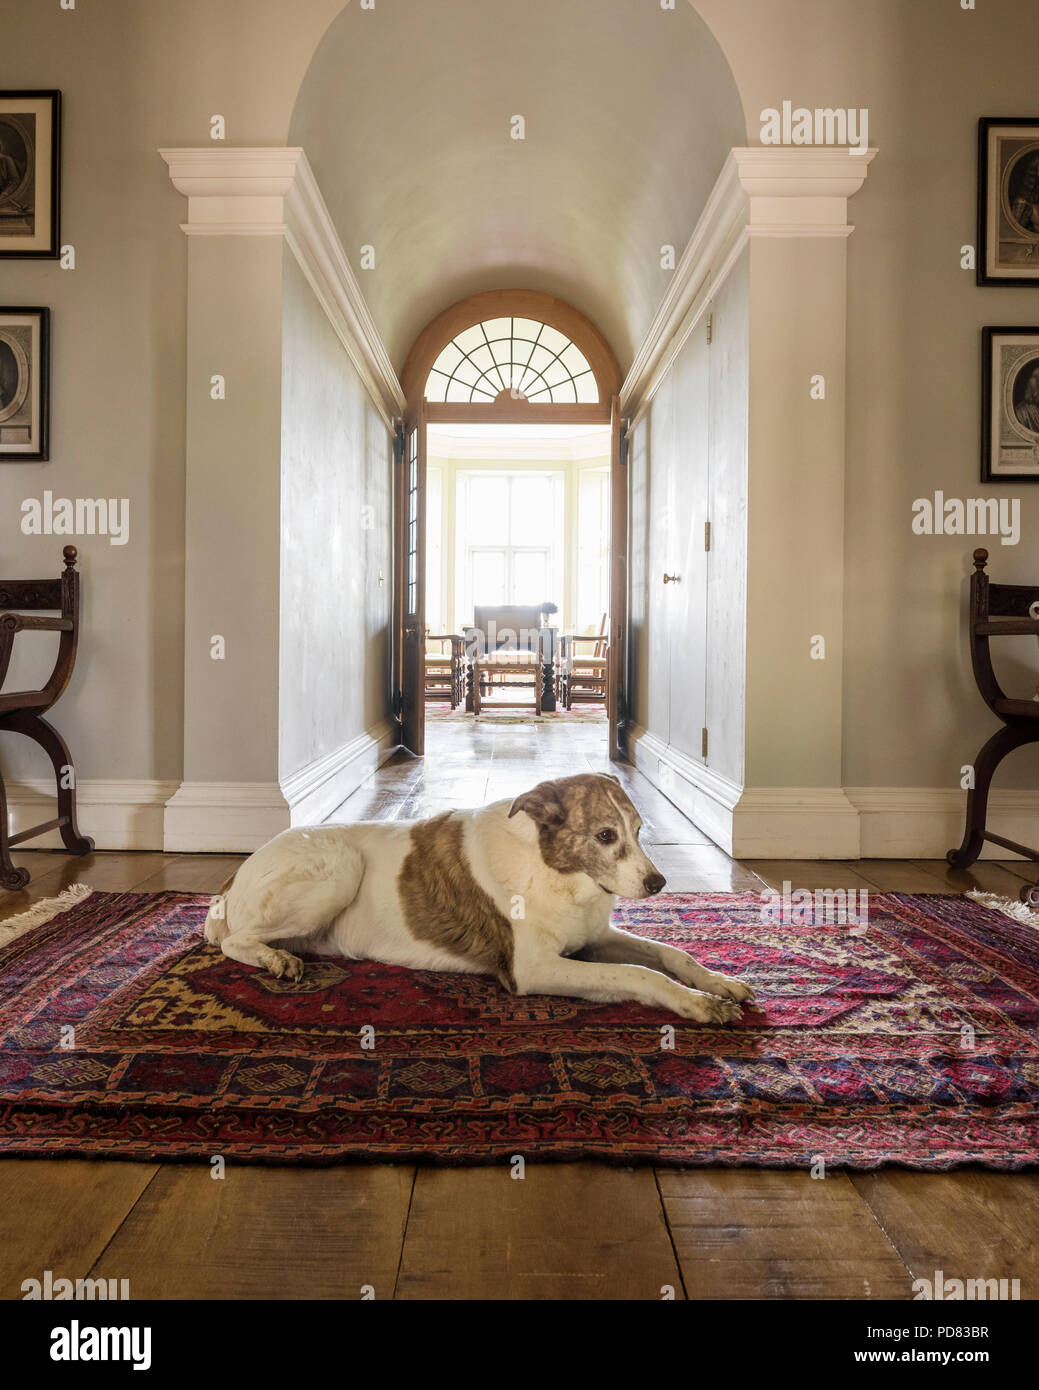 A dog lies on an antique rug in hall leading through to dining room with double doors Stock Photo